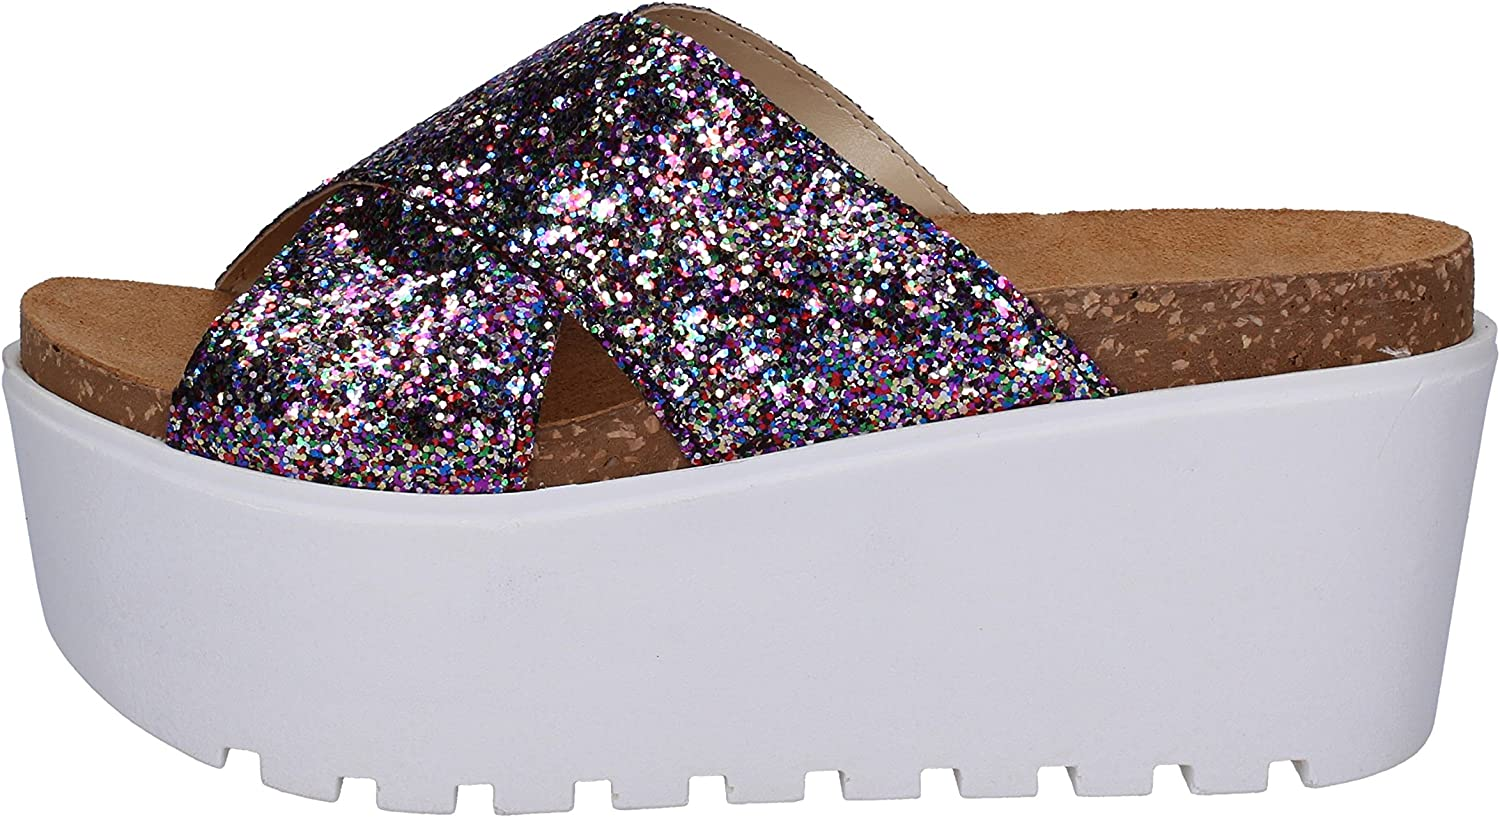 MANUFACTURE SESTE Sandals Womens Multicoloured